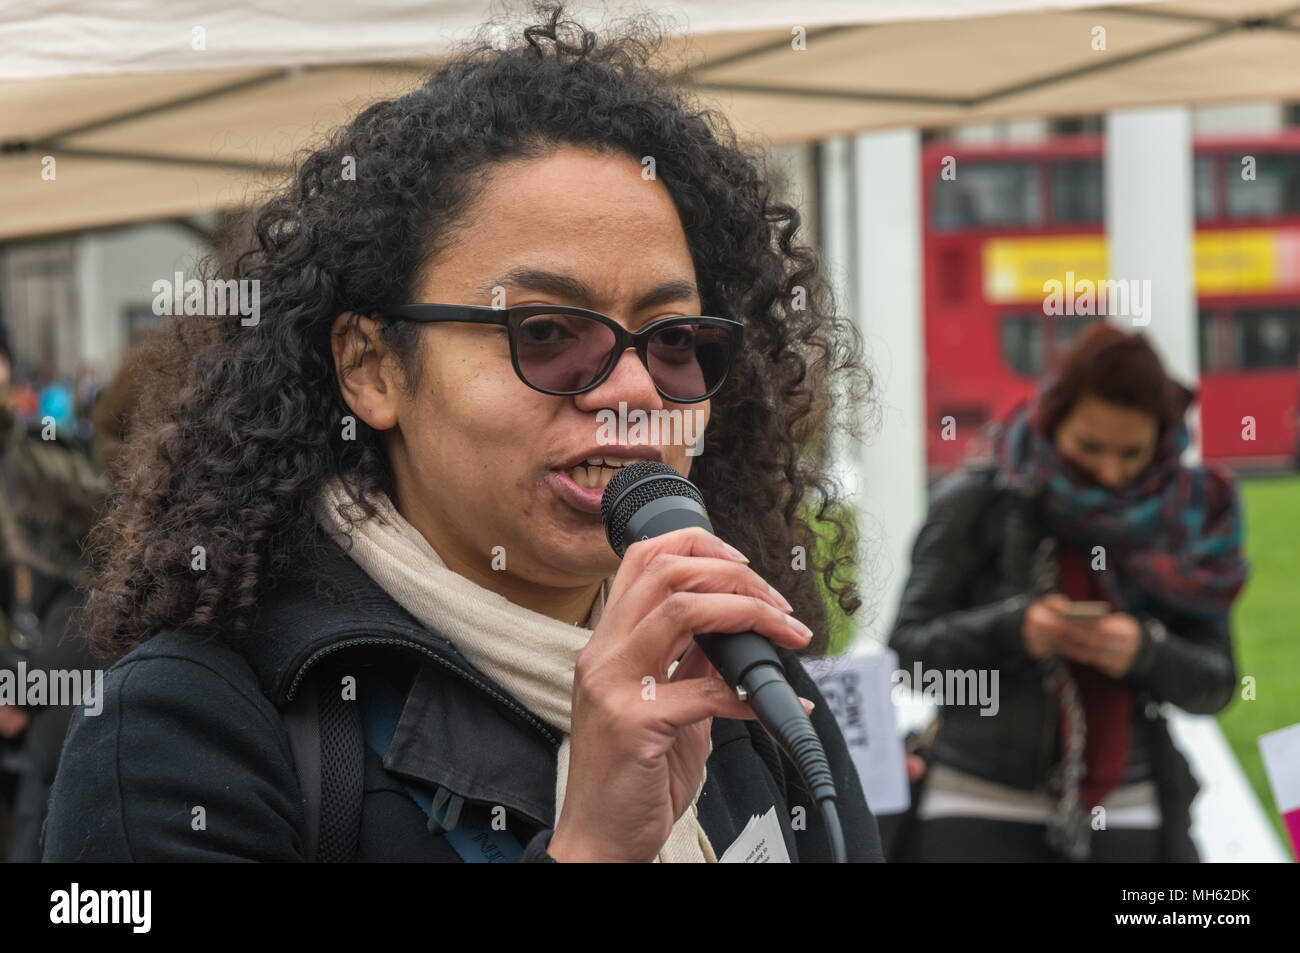 London, UK. 30th April 2018.  Antonia Bright of Movement for Justice speaks about their fight to stop deportations and to close Yarl's Wood and other immigration prisons at the protest in support of the petition calling for an end to the deportations of migrants in the 'Windrush generation' who arrived in Britain between 1948 and 1971. It calls on the government to change the burden of proof which means they are now required to prove their right to remain, and to provide compensation for any loss and hurt.. Most of those who have been deported, threatened with deportation or refused entry afte - Stock Image